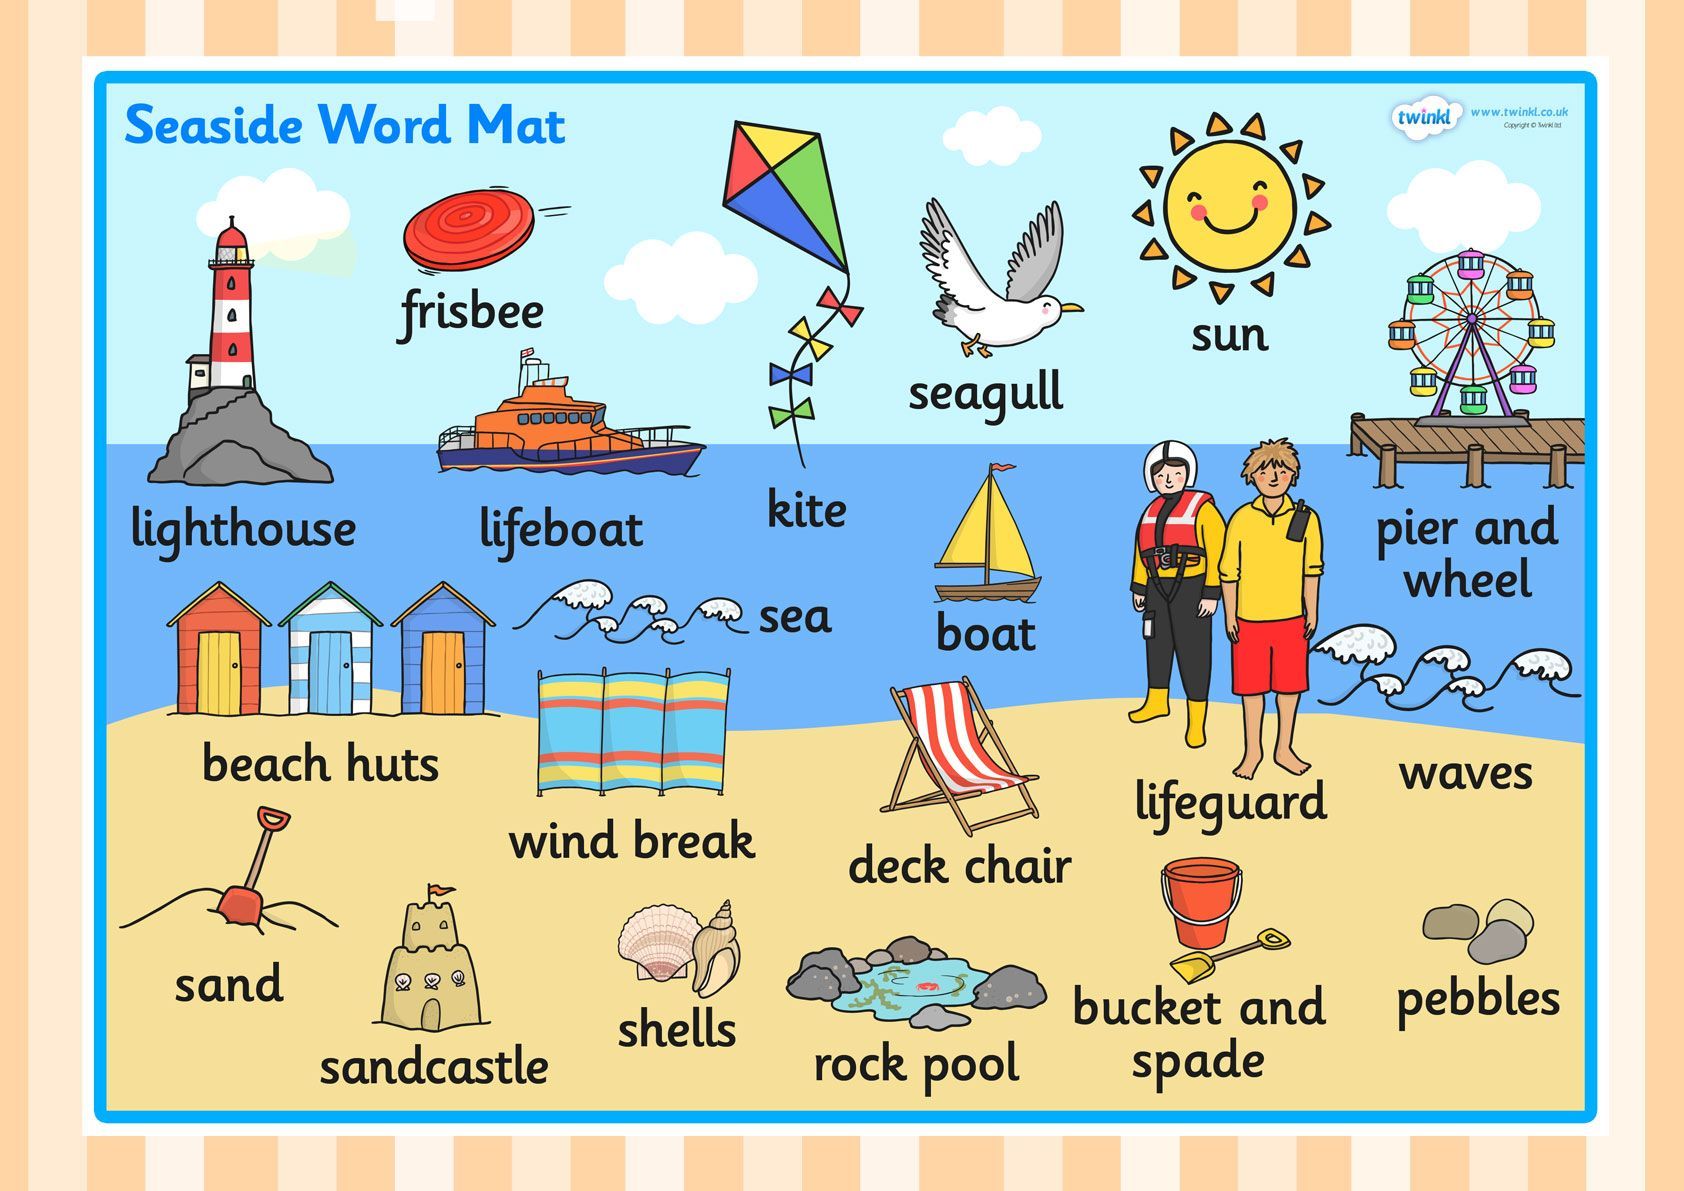 The Seaside Word Mat